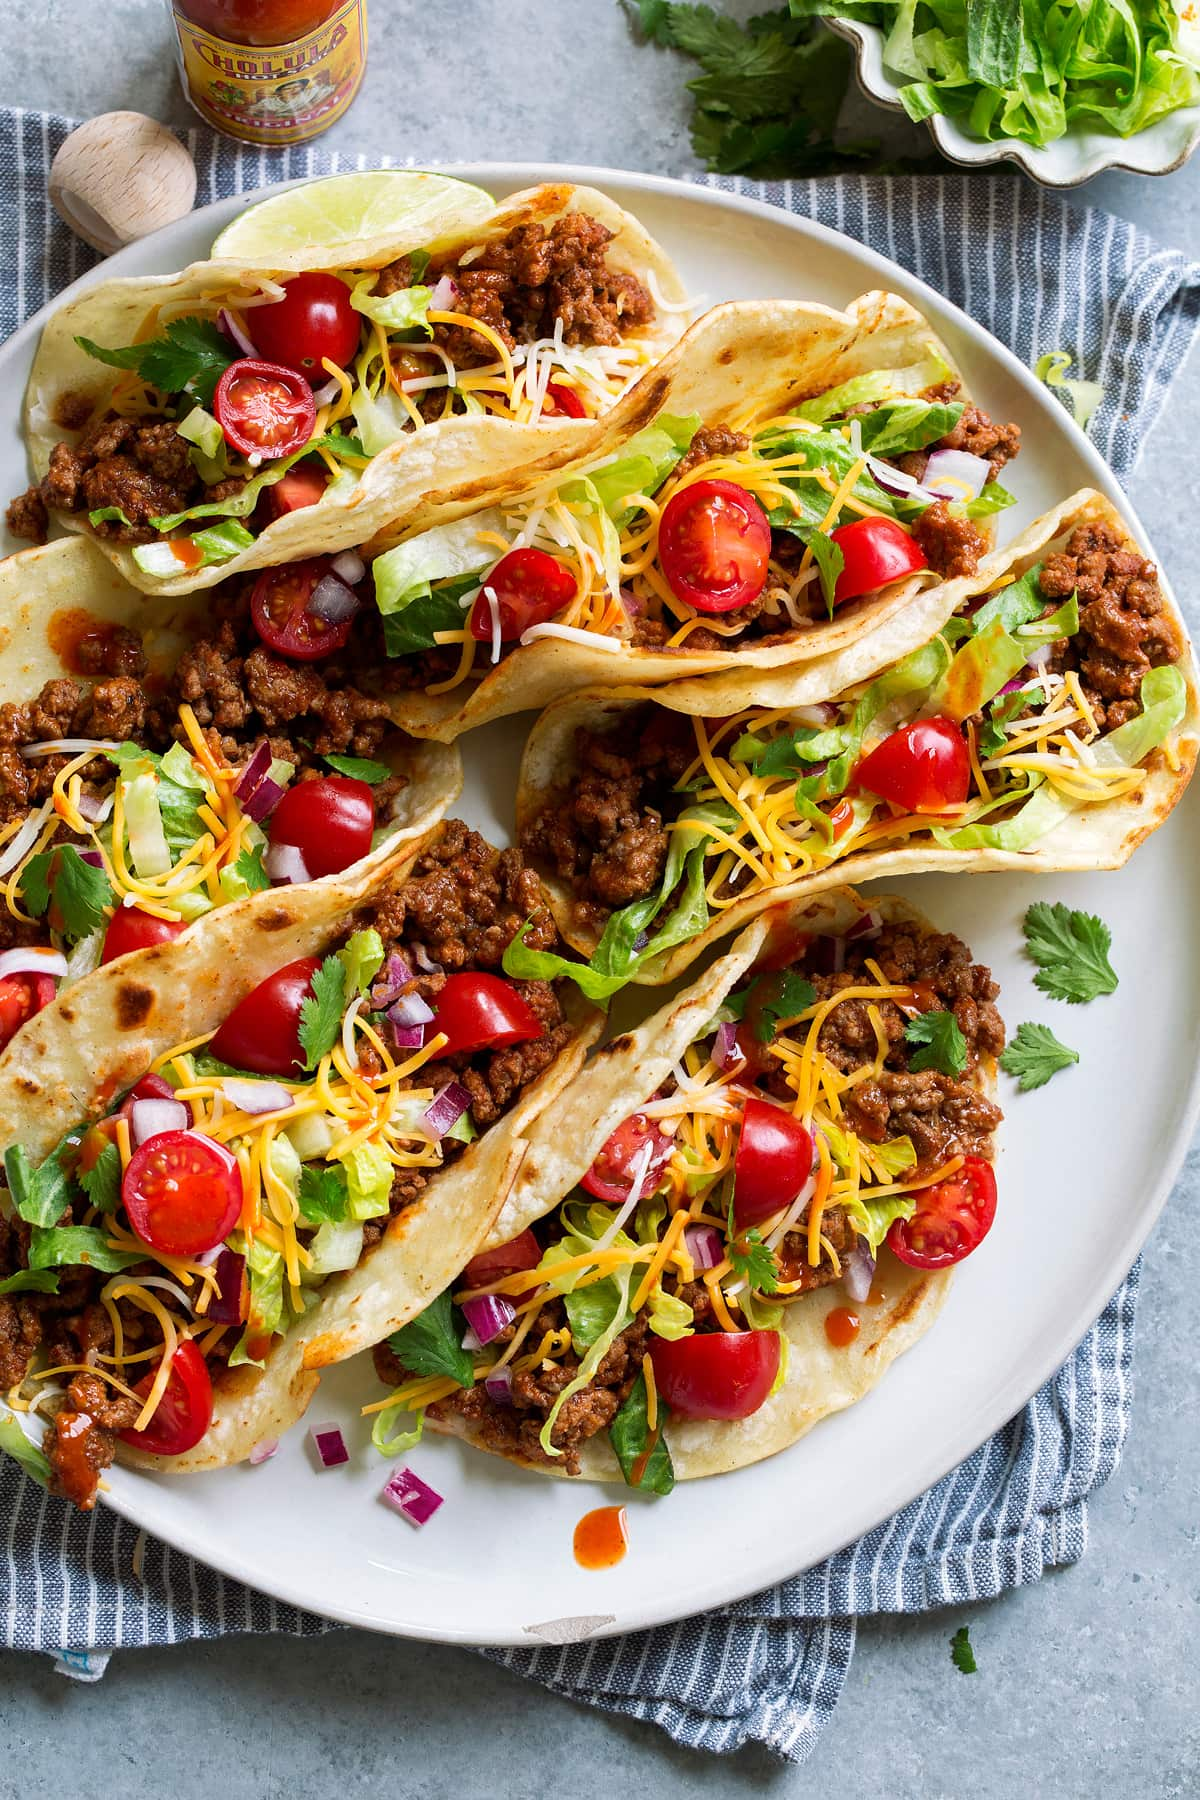 Plate full of tacos.